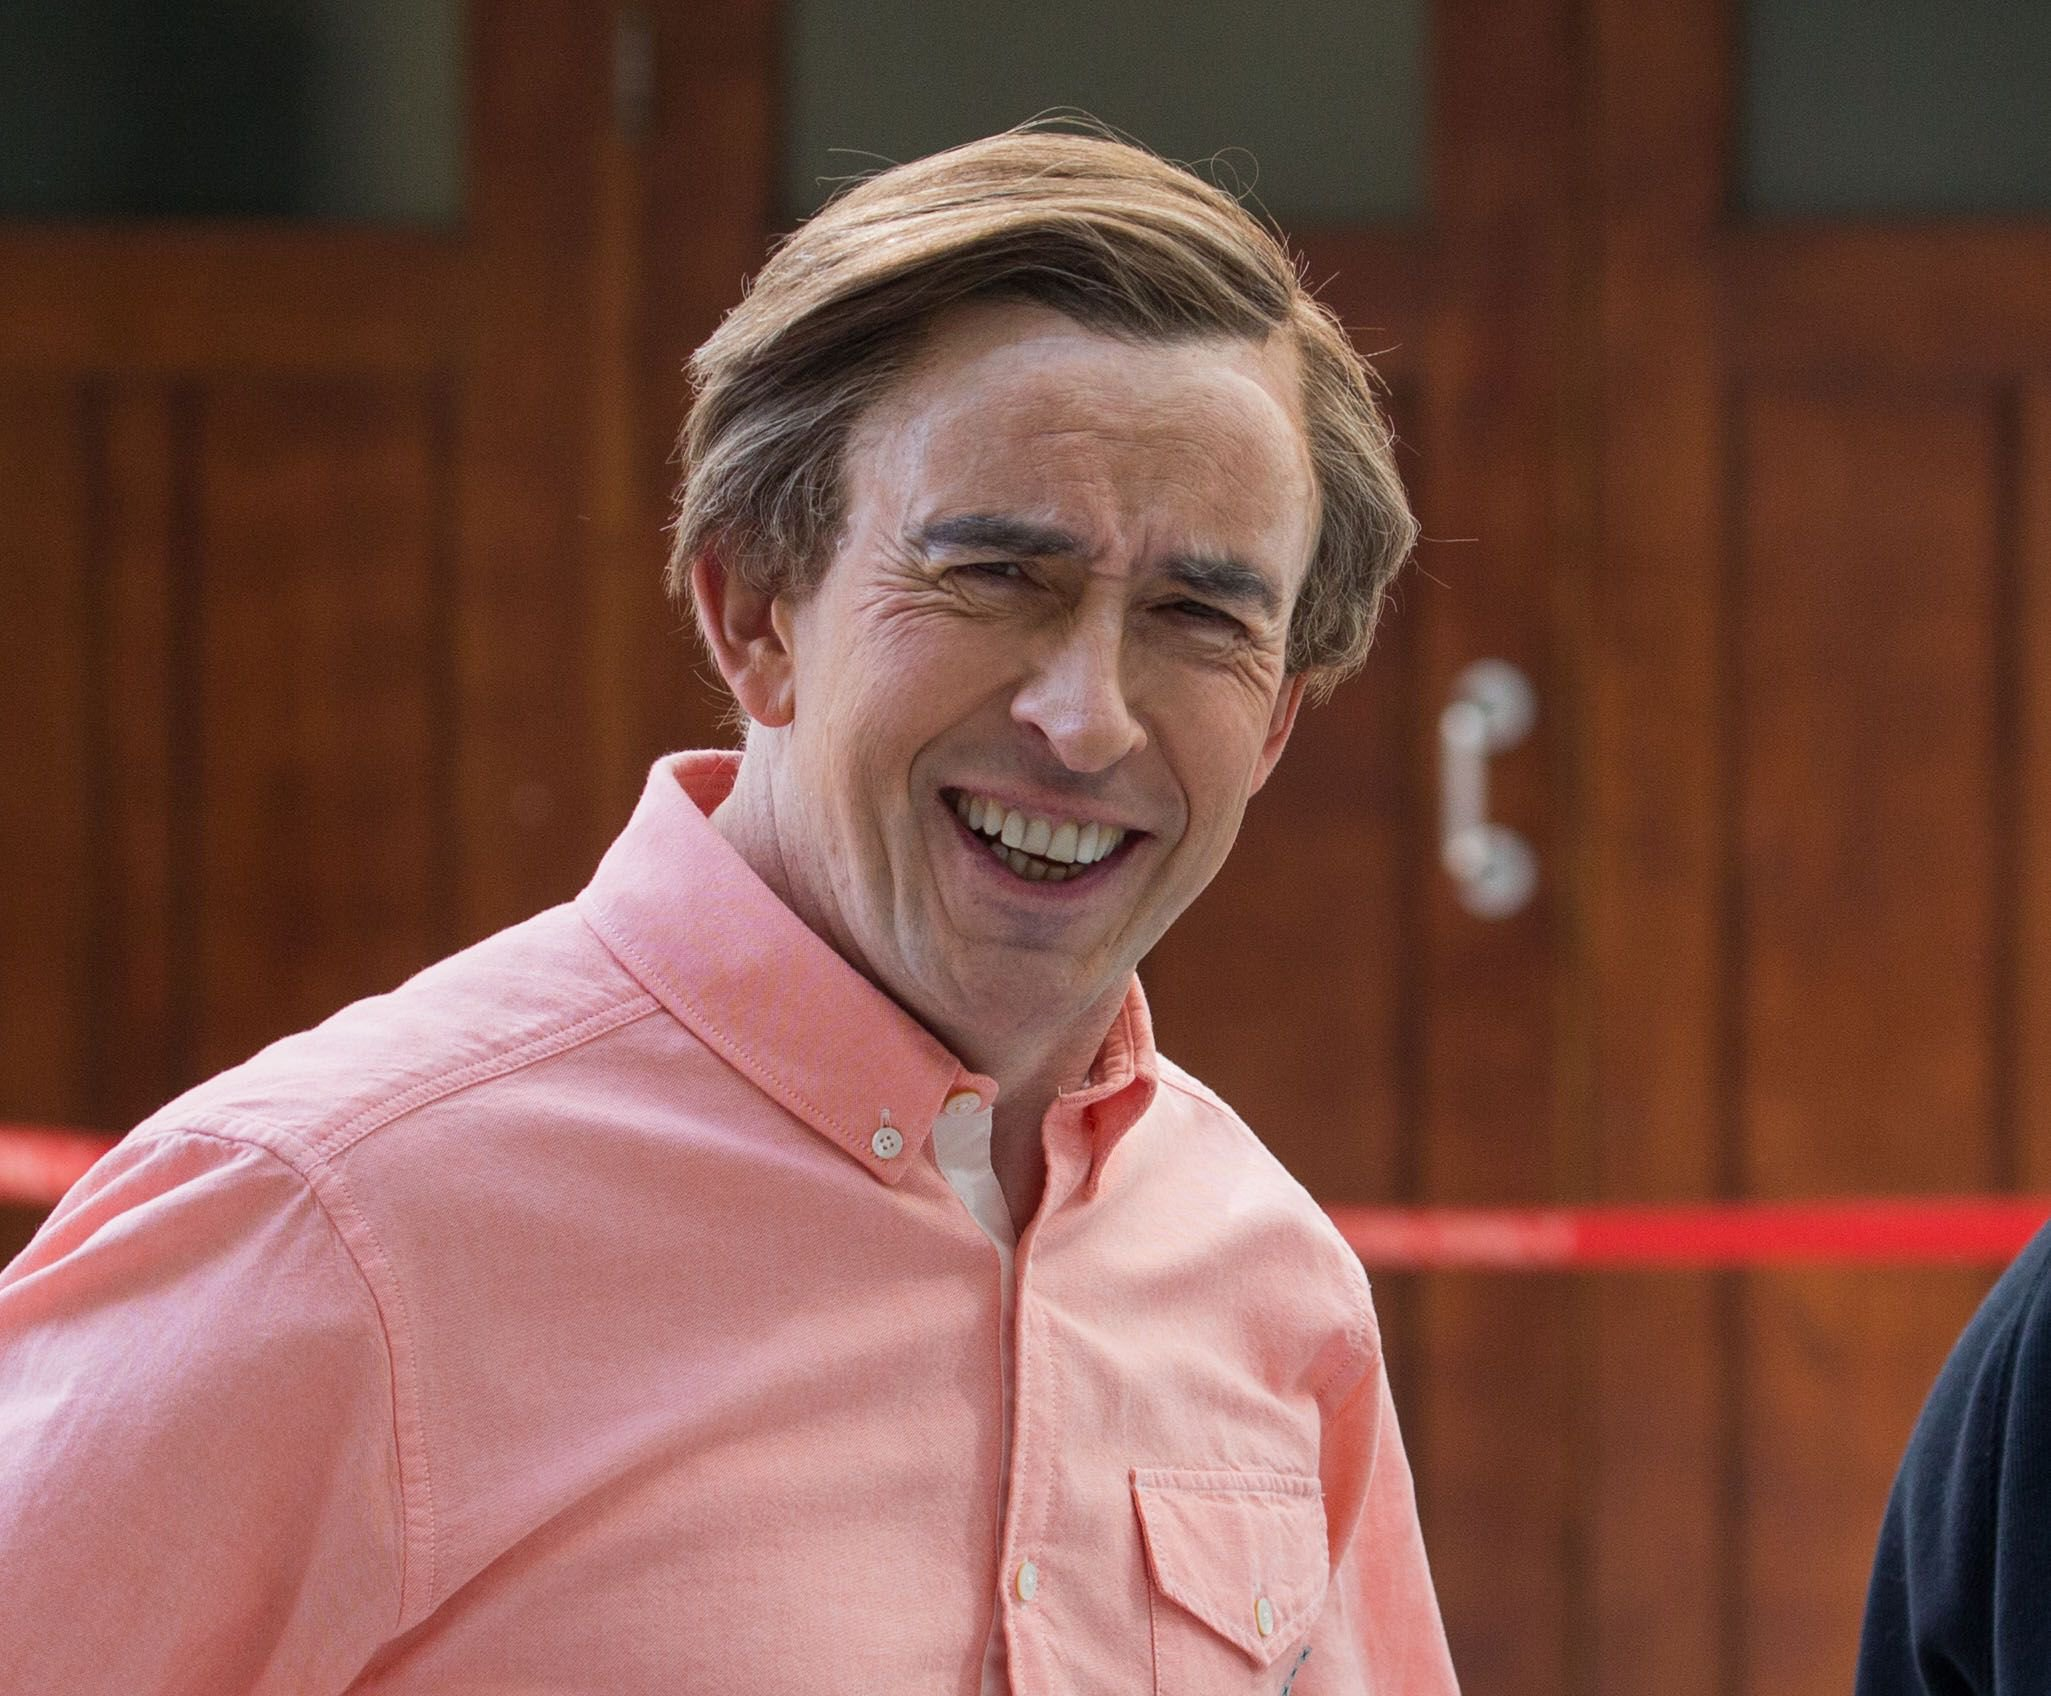 Alan Partridge who is returning to TV in This Time With Alan Partridg